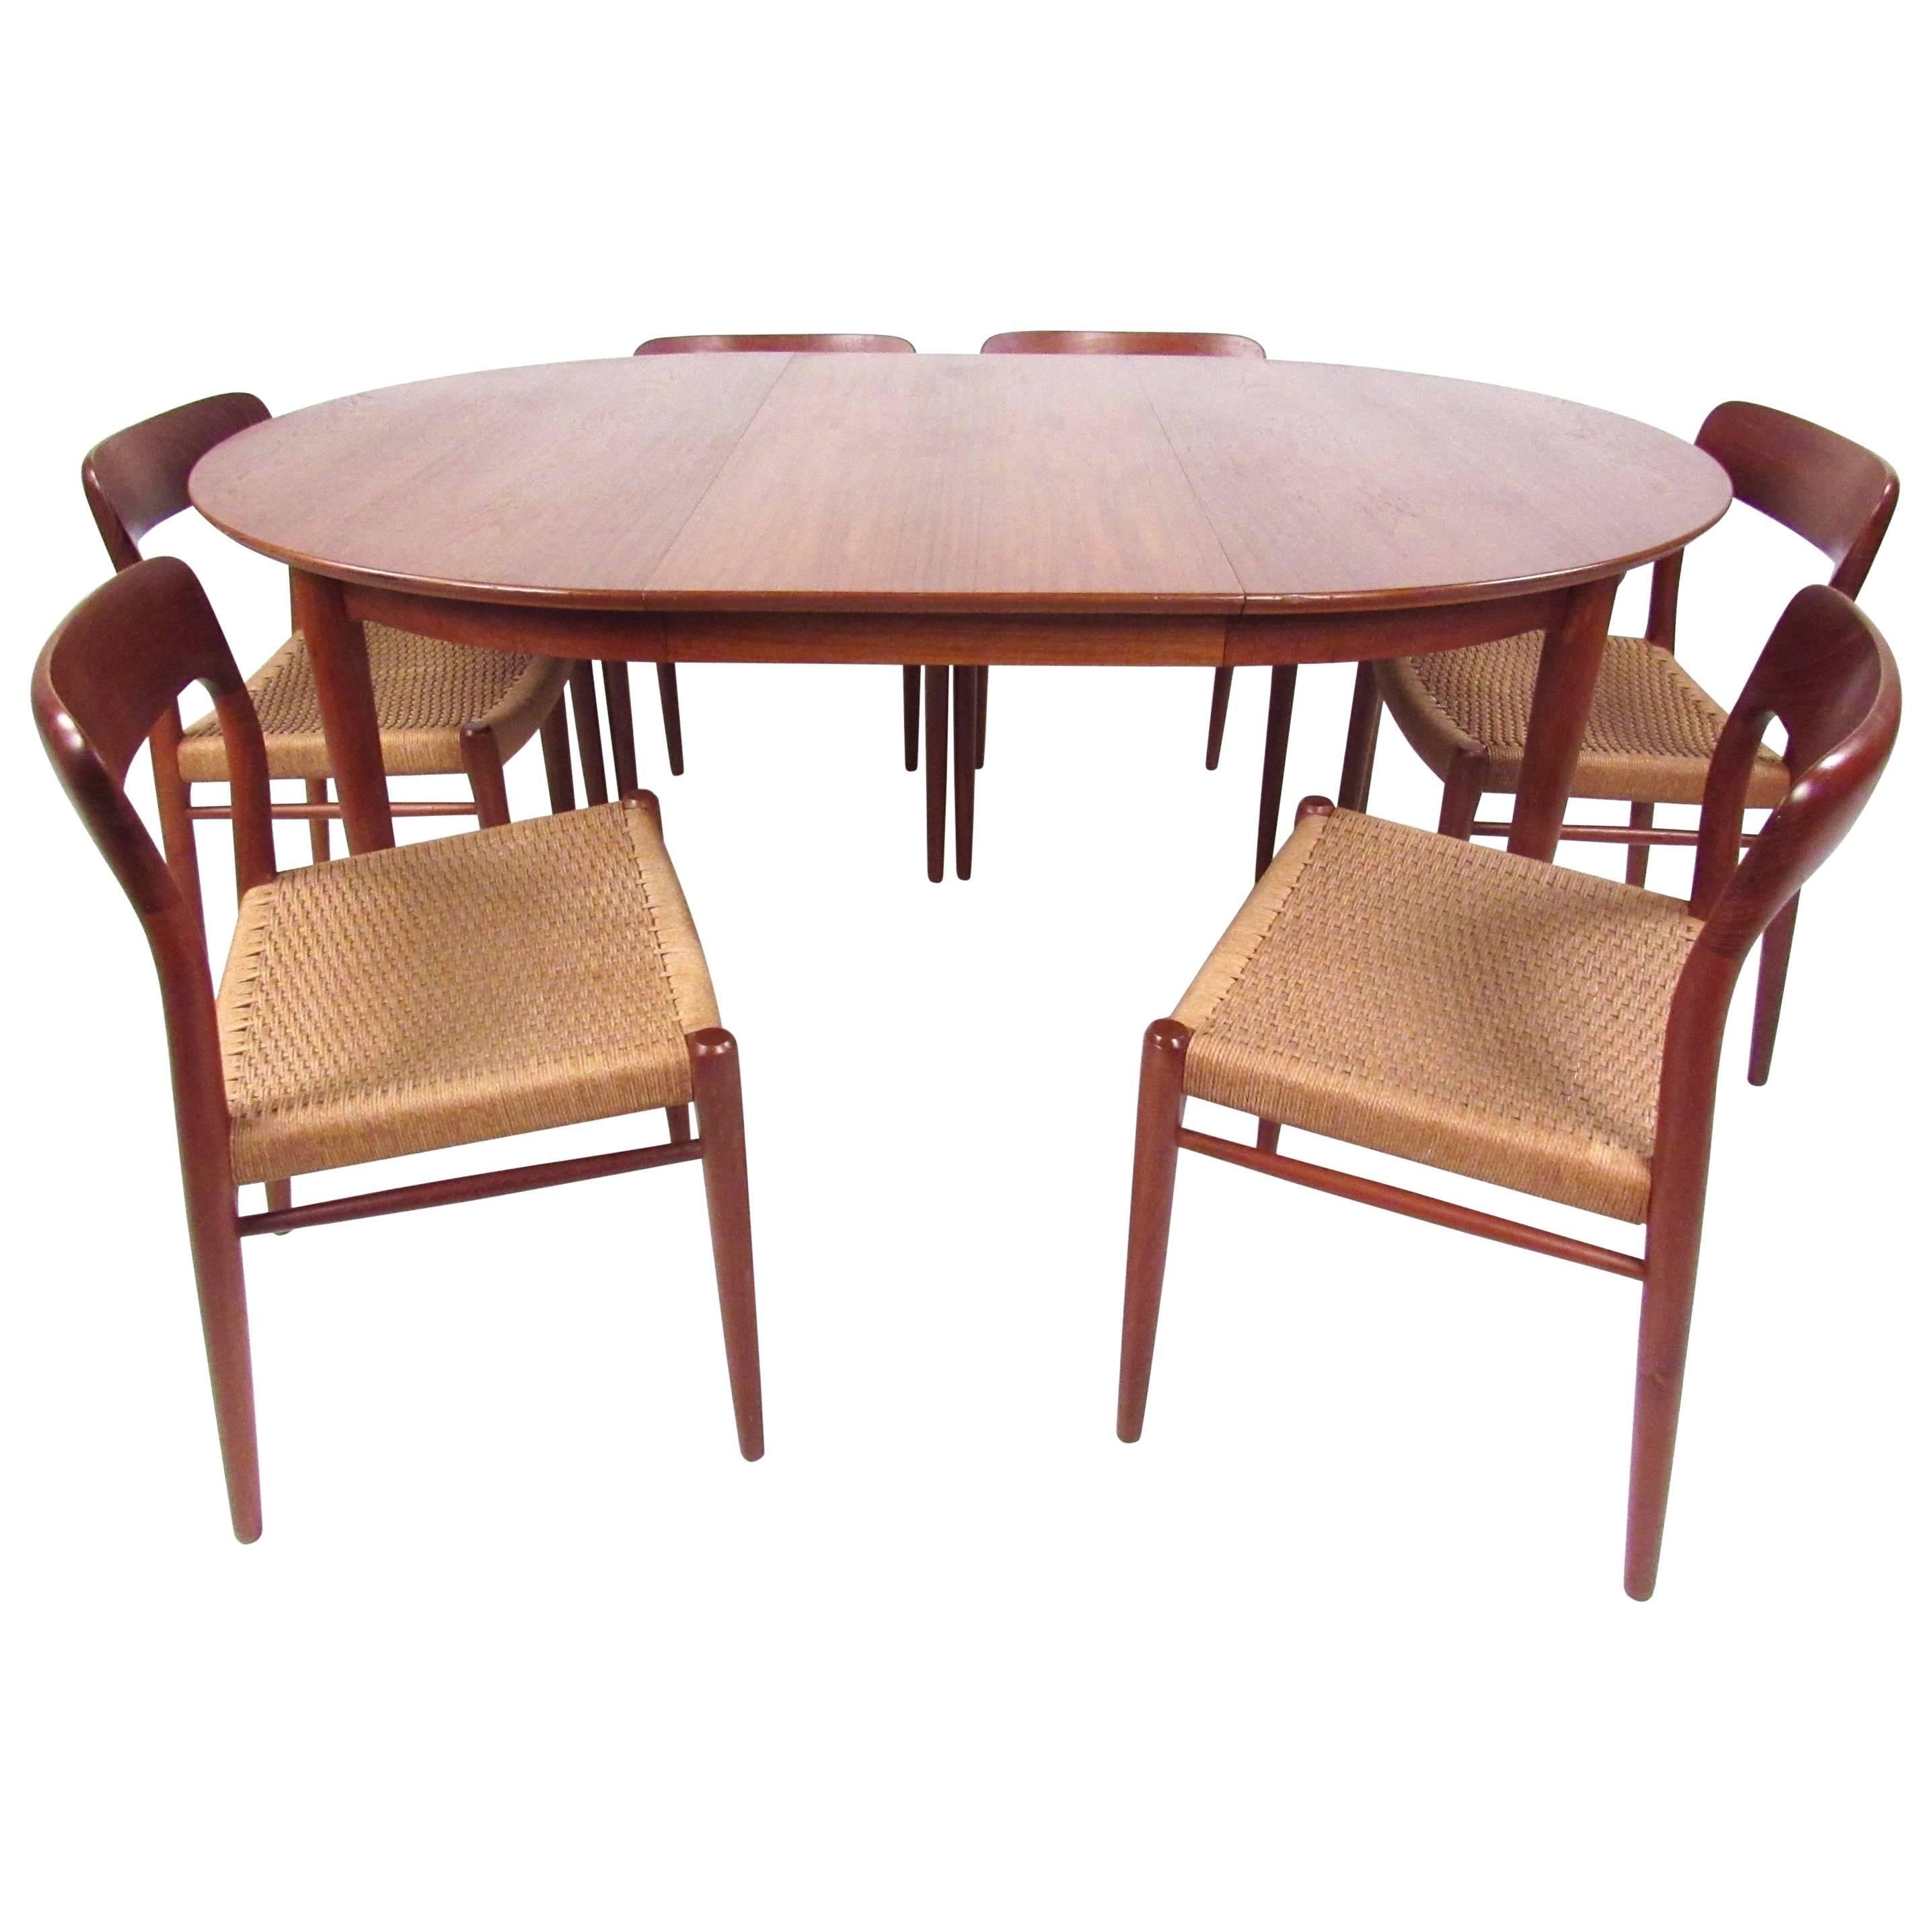 N.O. Møller Teak Dining Table With Papercord Chairs